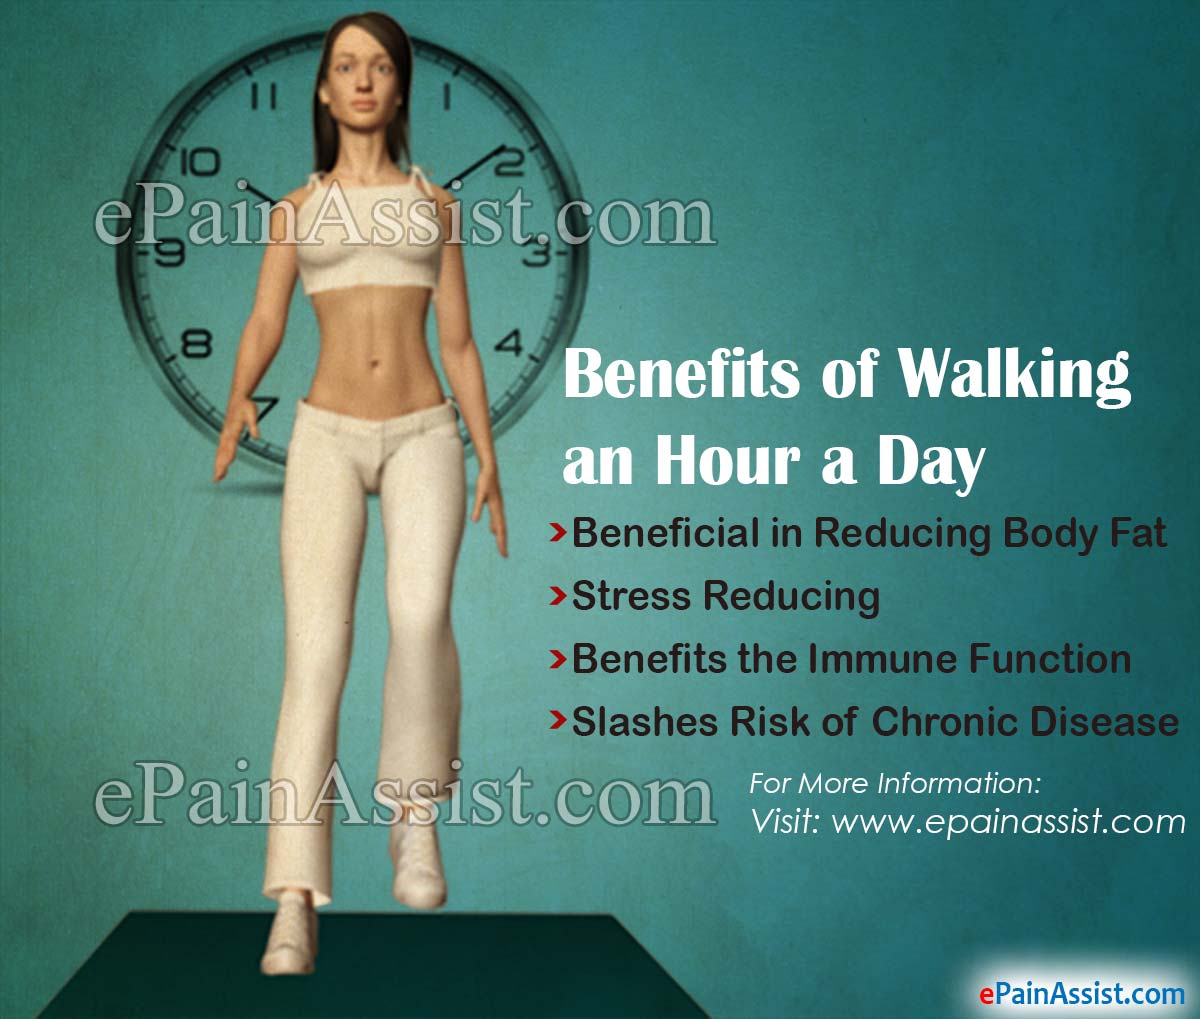 Benefits of Walking an Hour a Day